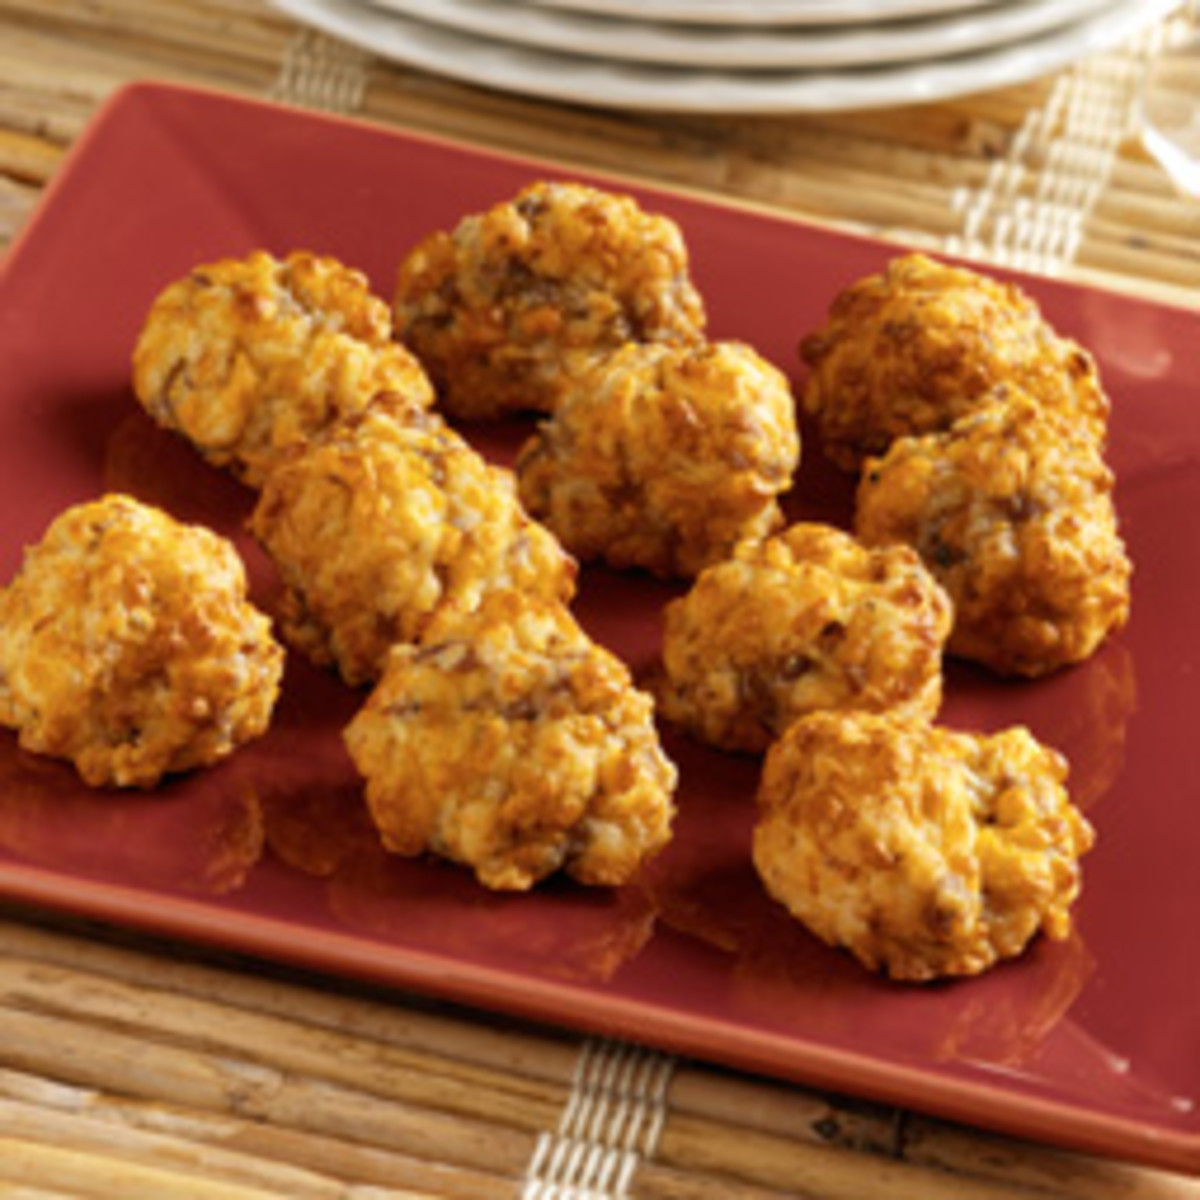 These Sausage And Cheese Balls are oh so delicious and one of the best appetizers you will ever eat.